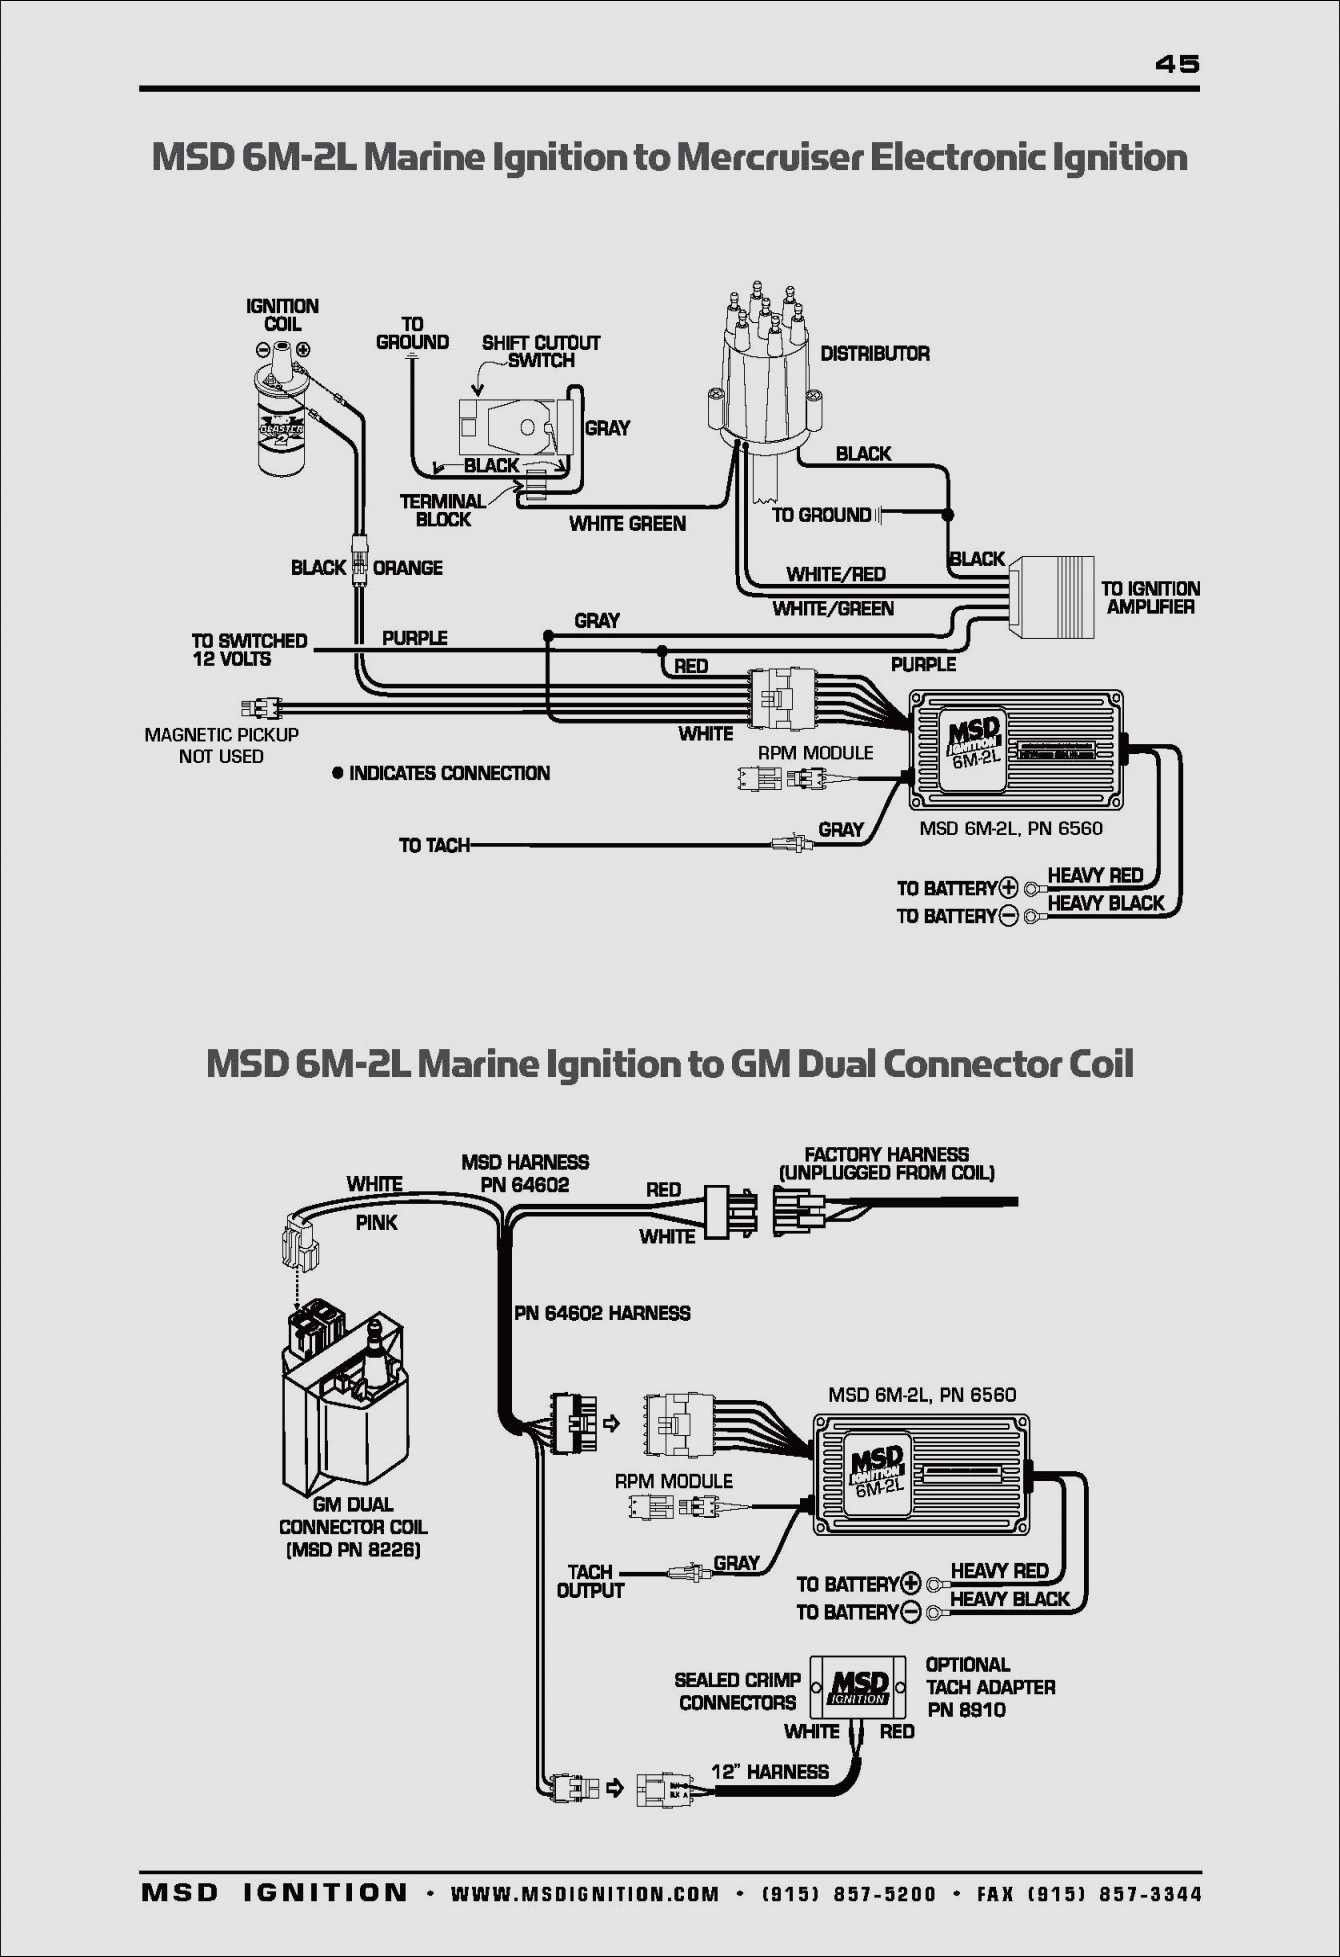 [XOTG_4463]  Unique Wiring Diagram Design Sample Free Download #diagrams #digramssample  #diagramimages | Diagram design, Diagram, Car batteries | Black Free Download Wiring Diagrams |  | Pinterest